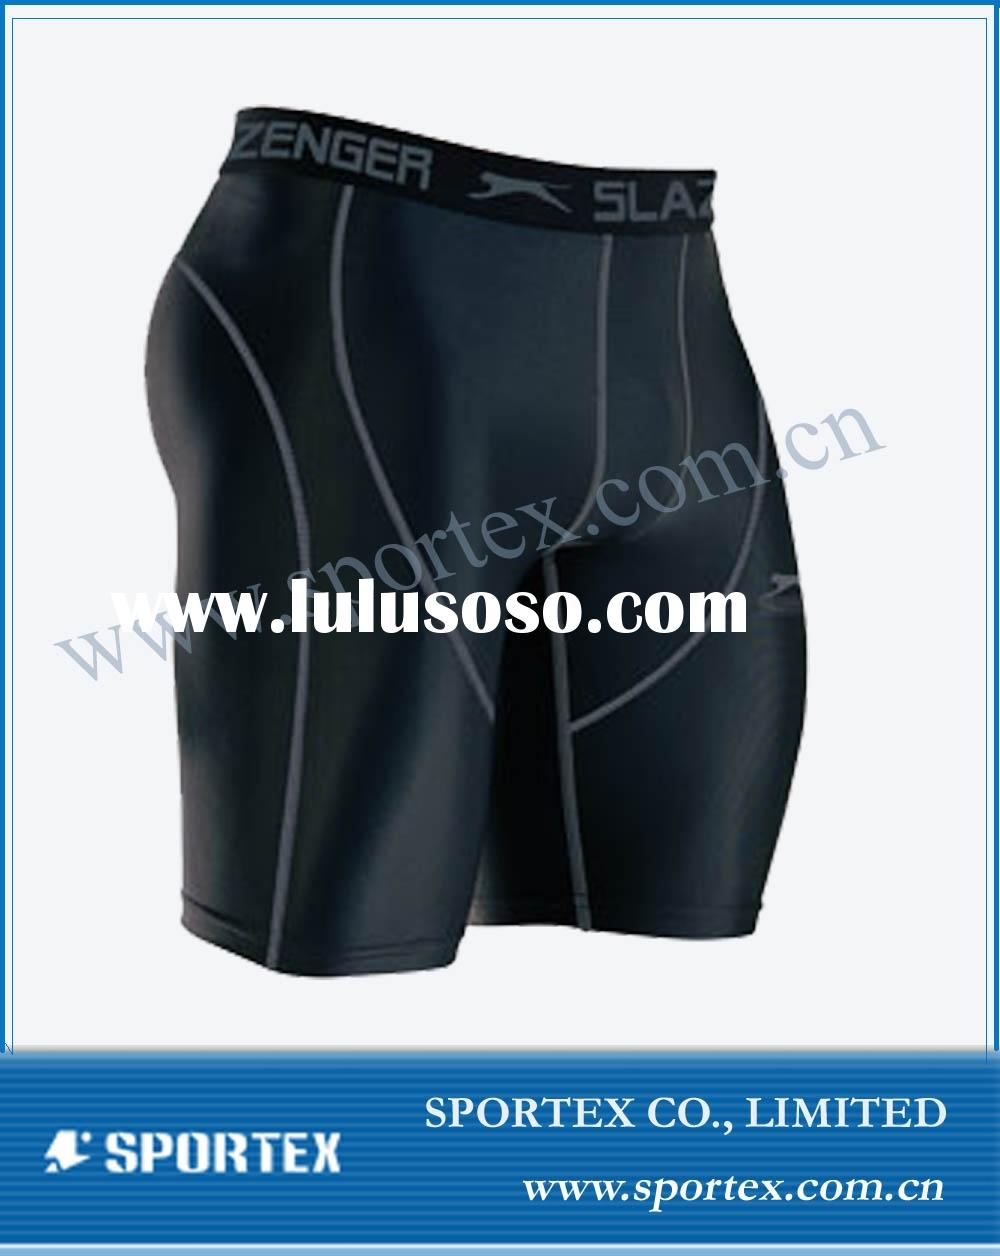 OEM best selling tight short, compression shorts 2011